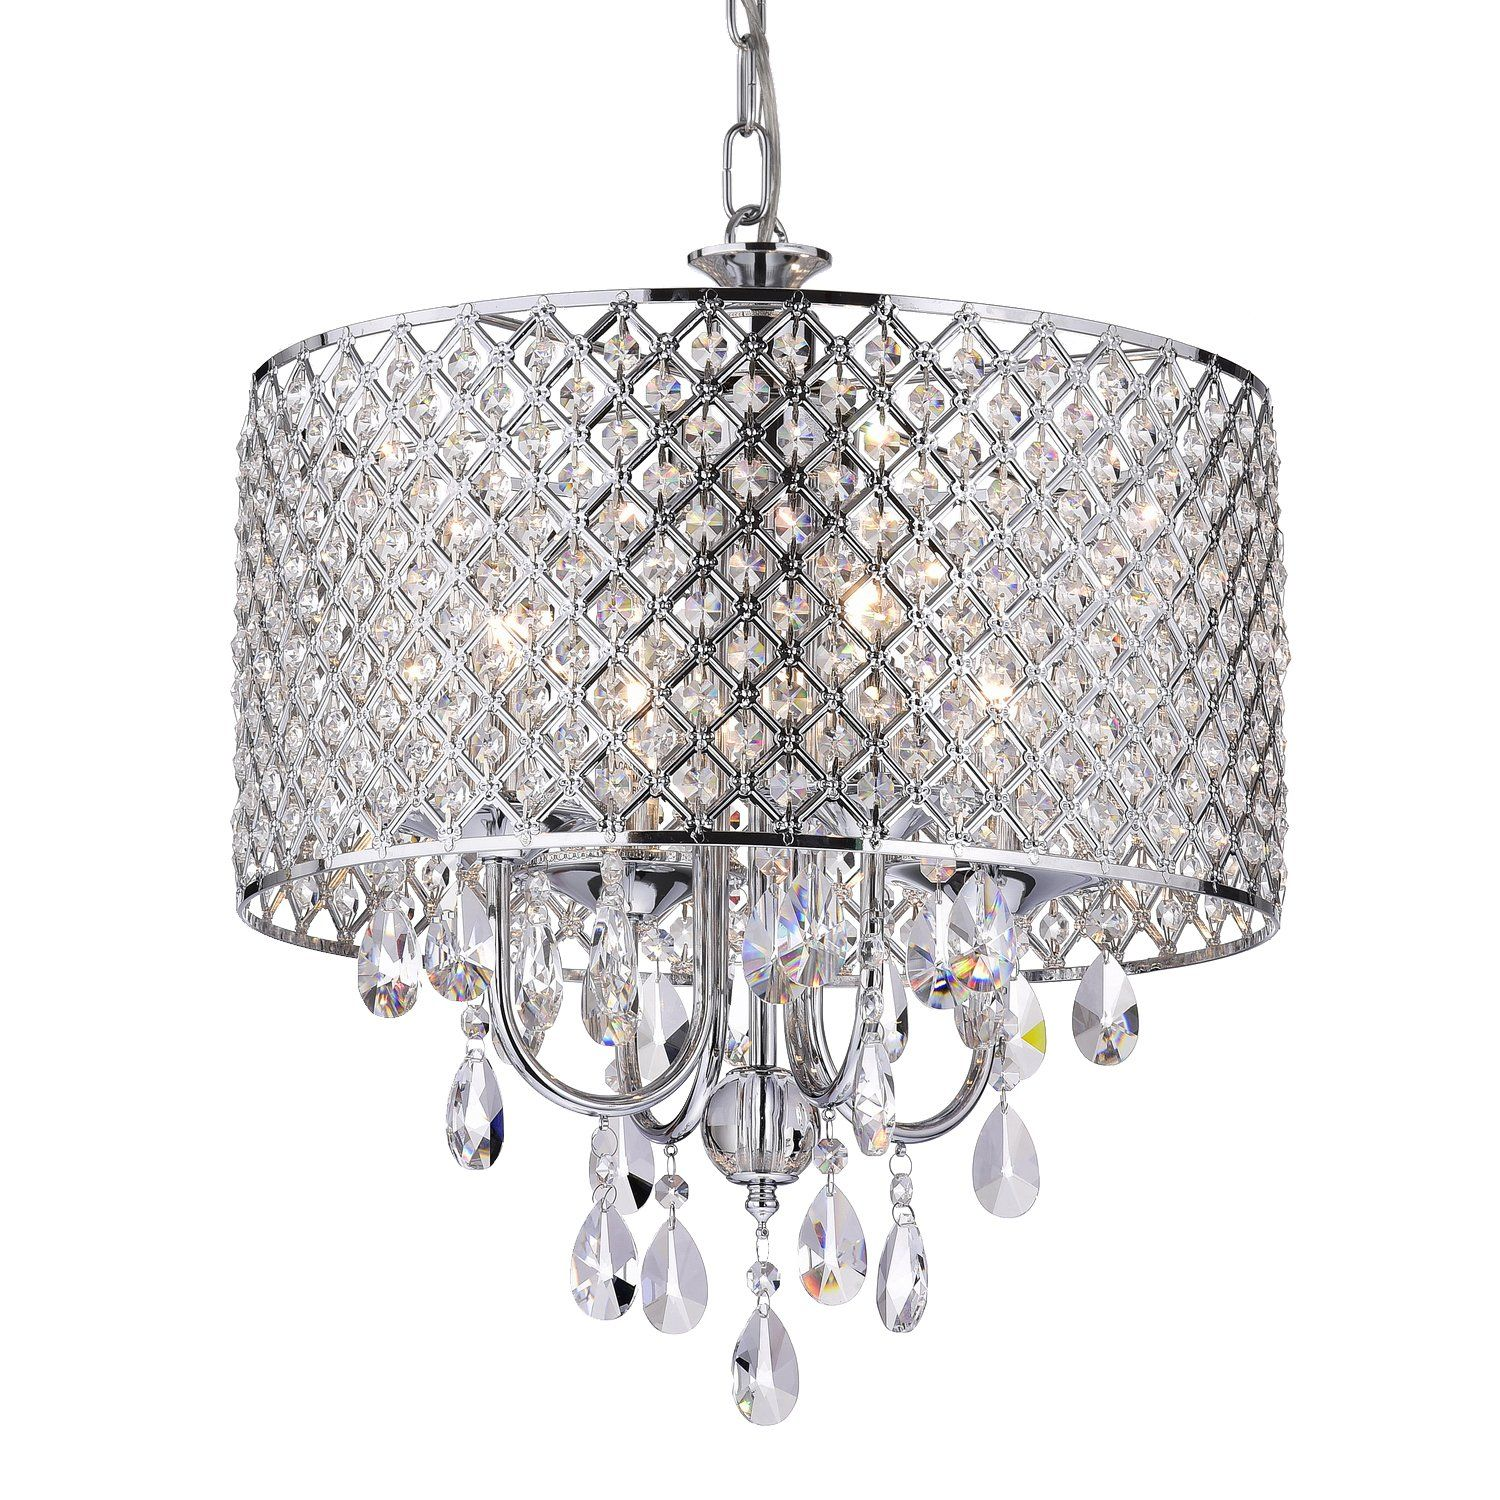 Edvivi Epg801ch Chrome Finish Drum Shade 4 Light Crystal Chandelier Ceiling Fixture Round